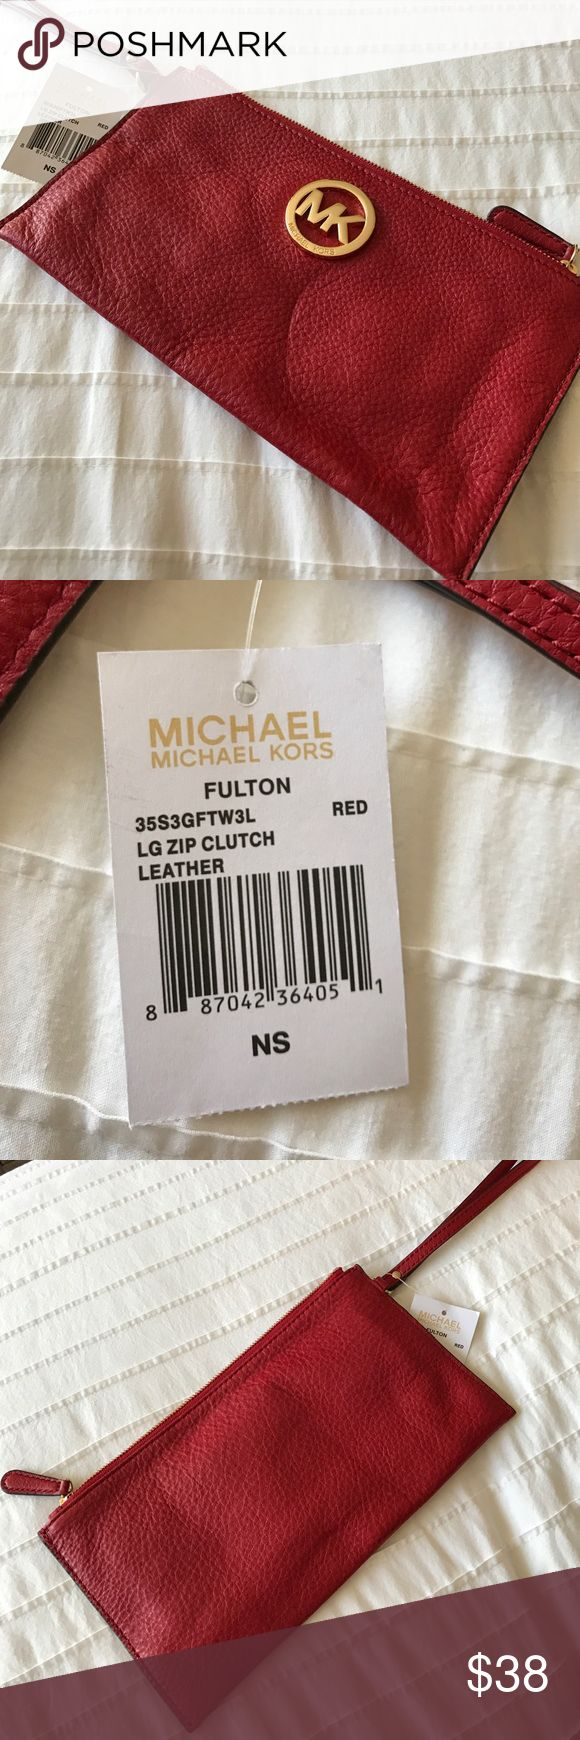 Michael Kors Fulton Clutch New / Never Used / Red Large Zip Clutch MICHAEL Michael Kors Bags Clutches & Wristlets